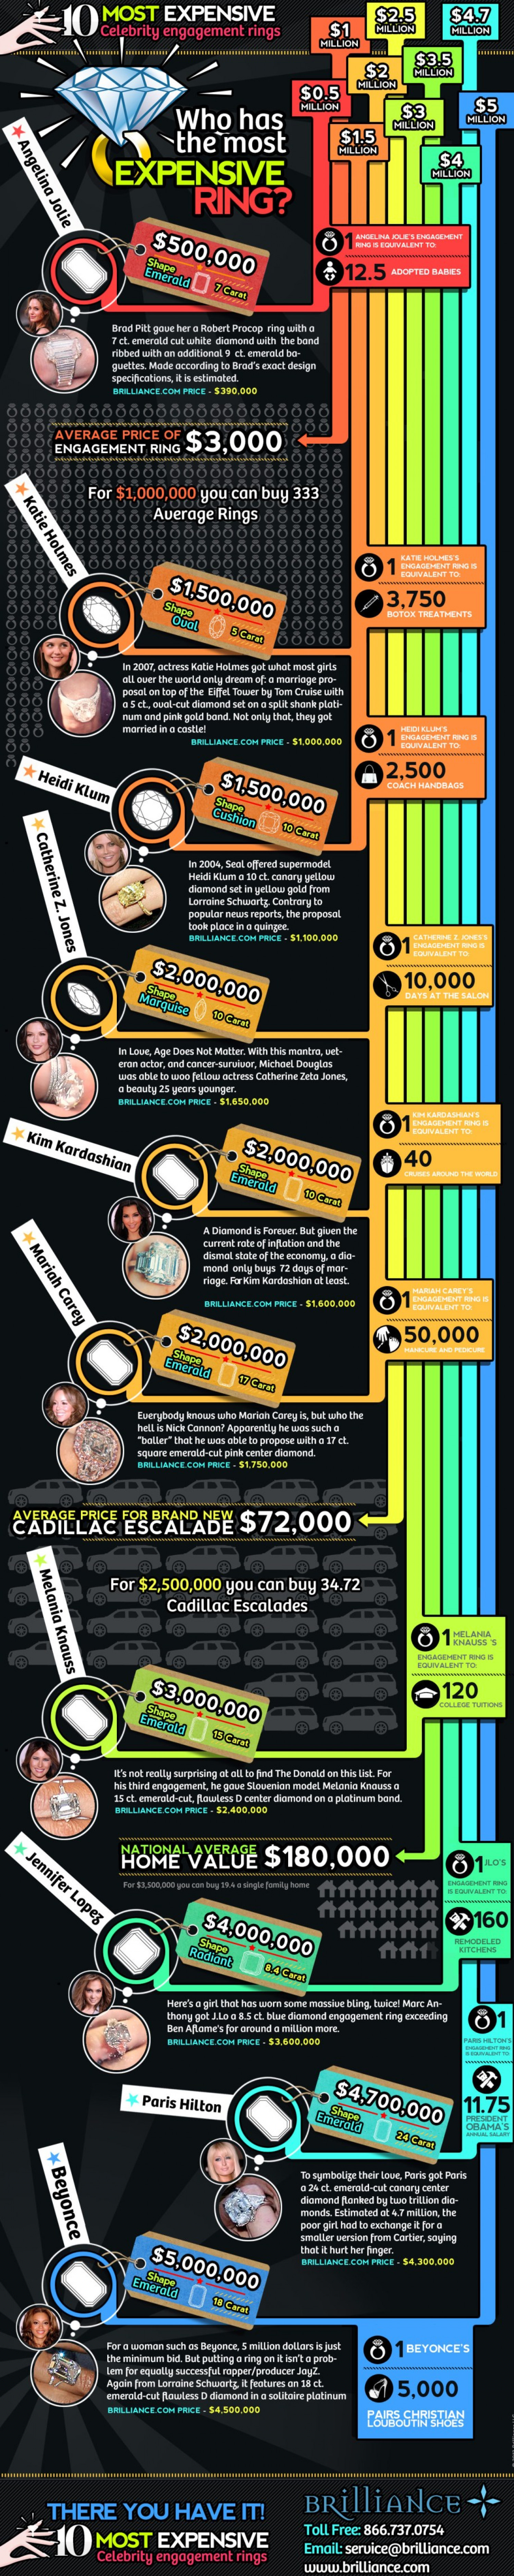 10 Most Expensive Celebrity Engagement Rings Infographic